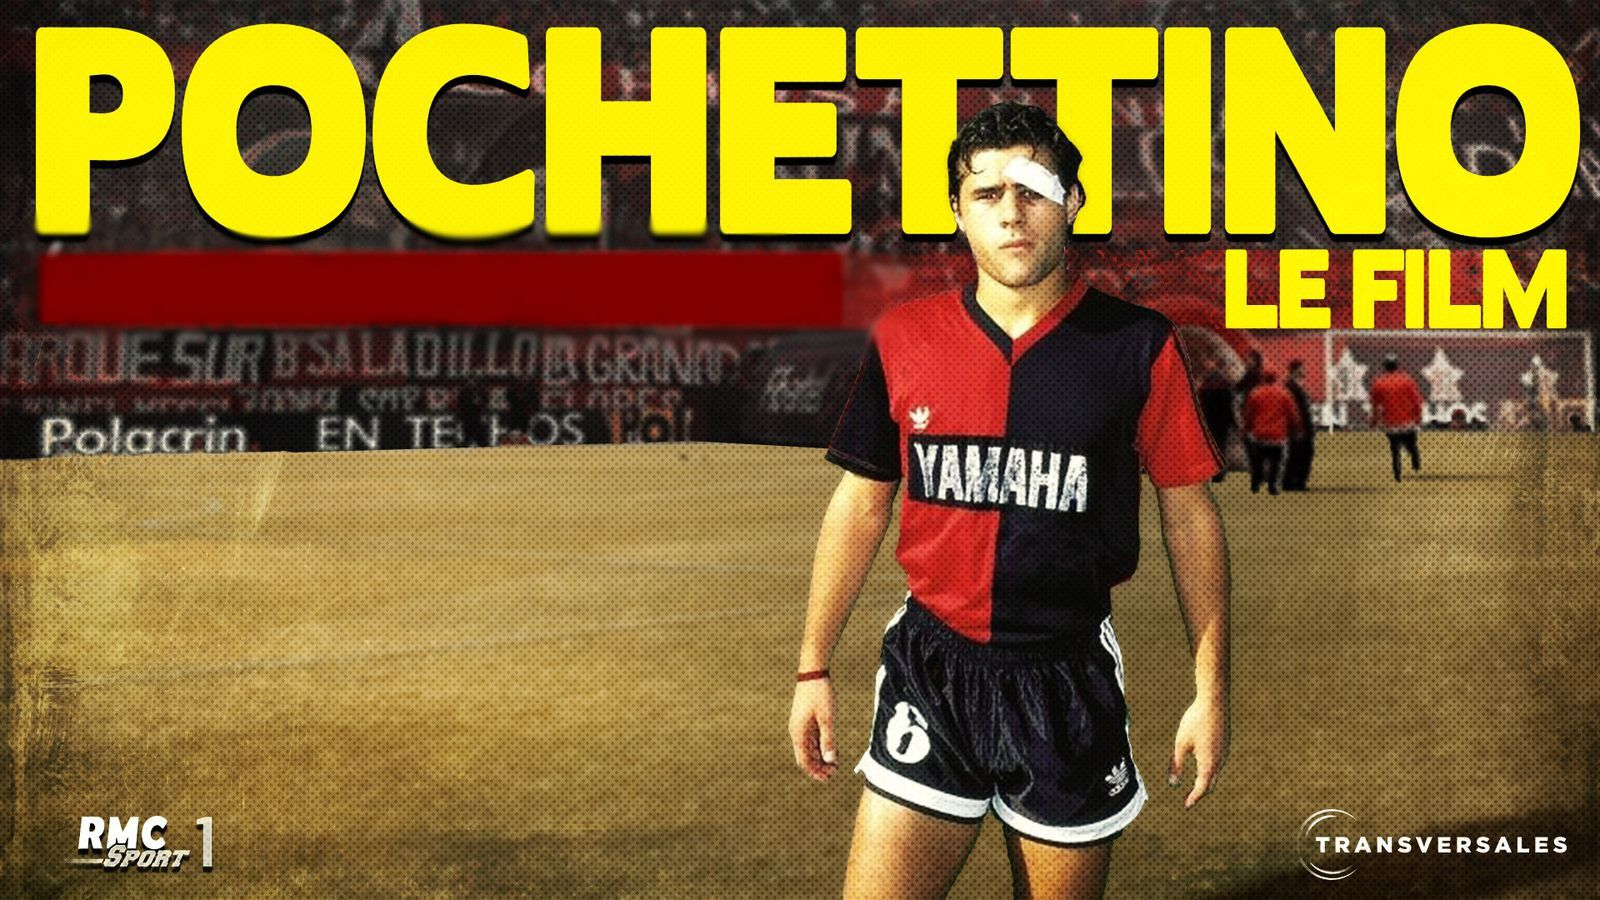 Voir Film Pochettino, le film - Documentaire (2021) streaming VF gratuit complet